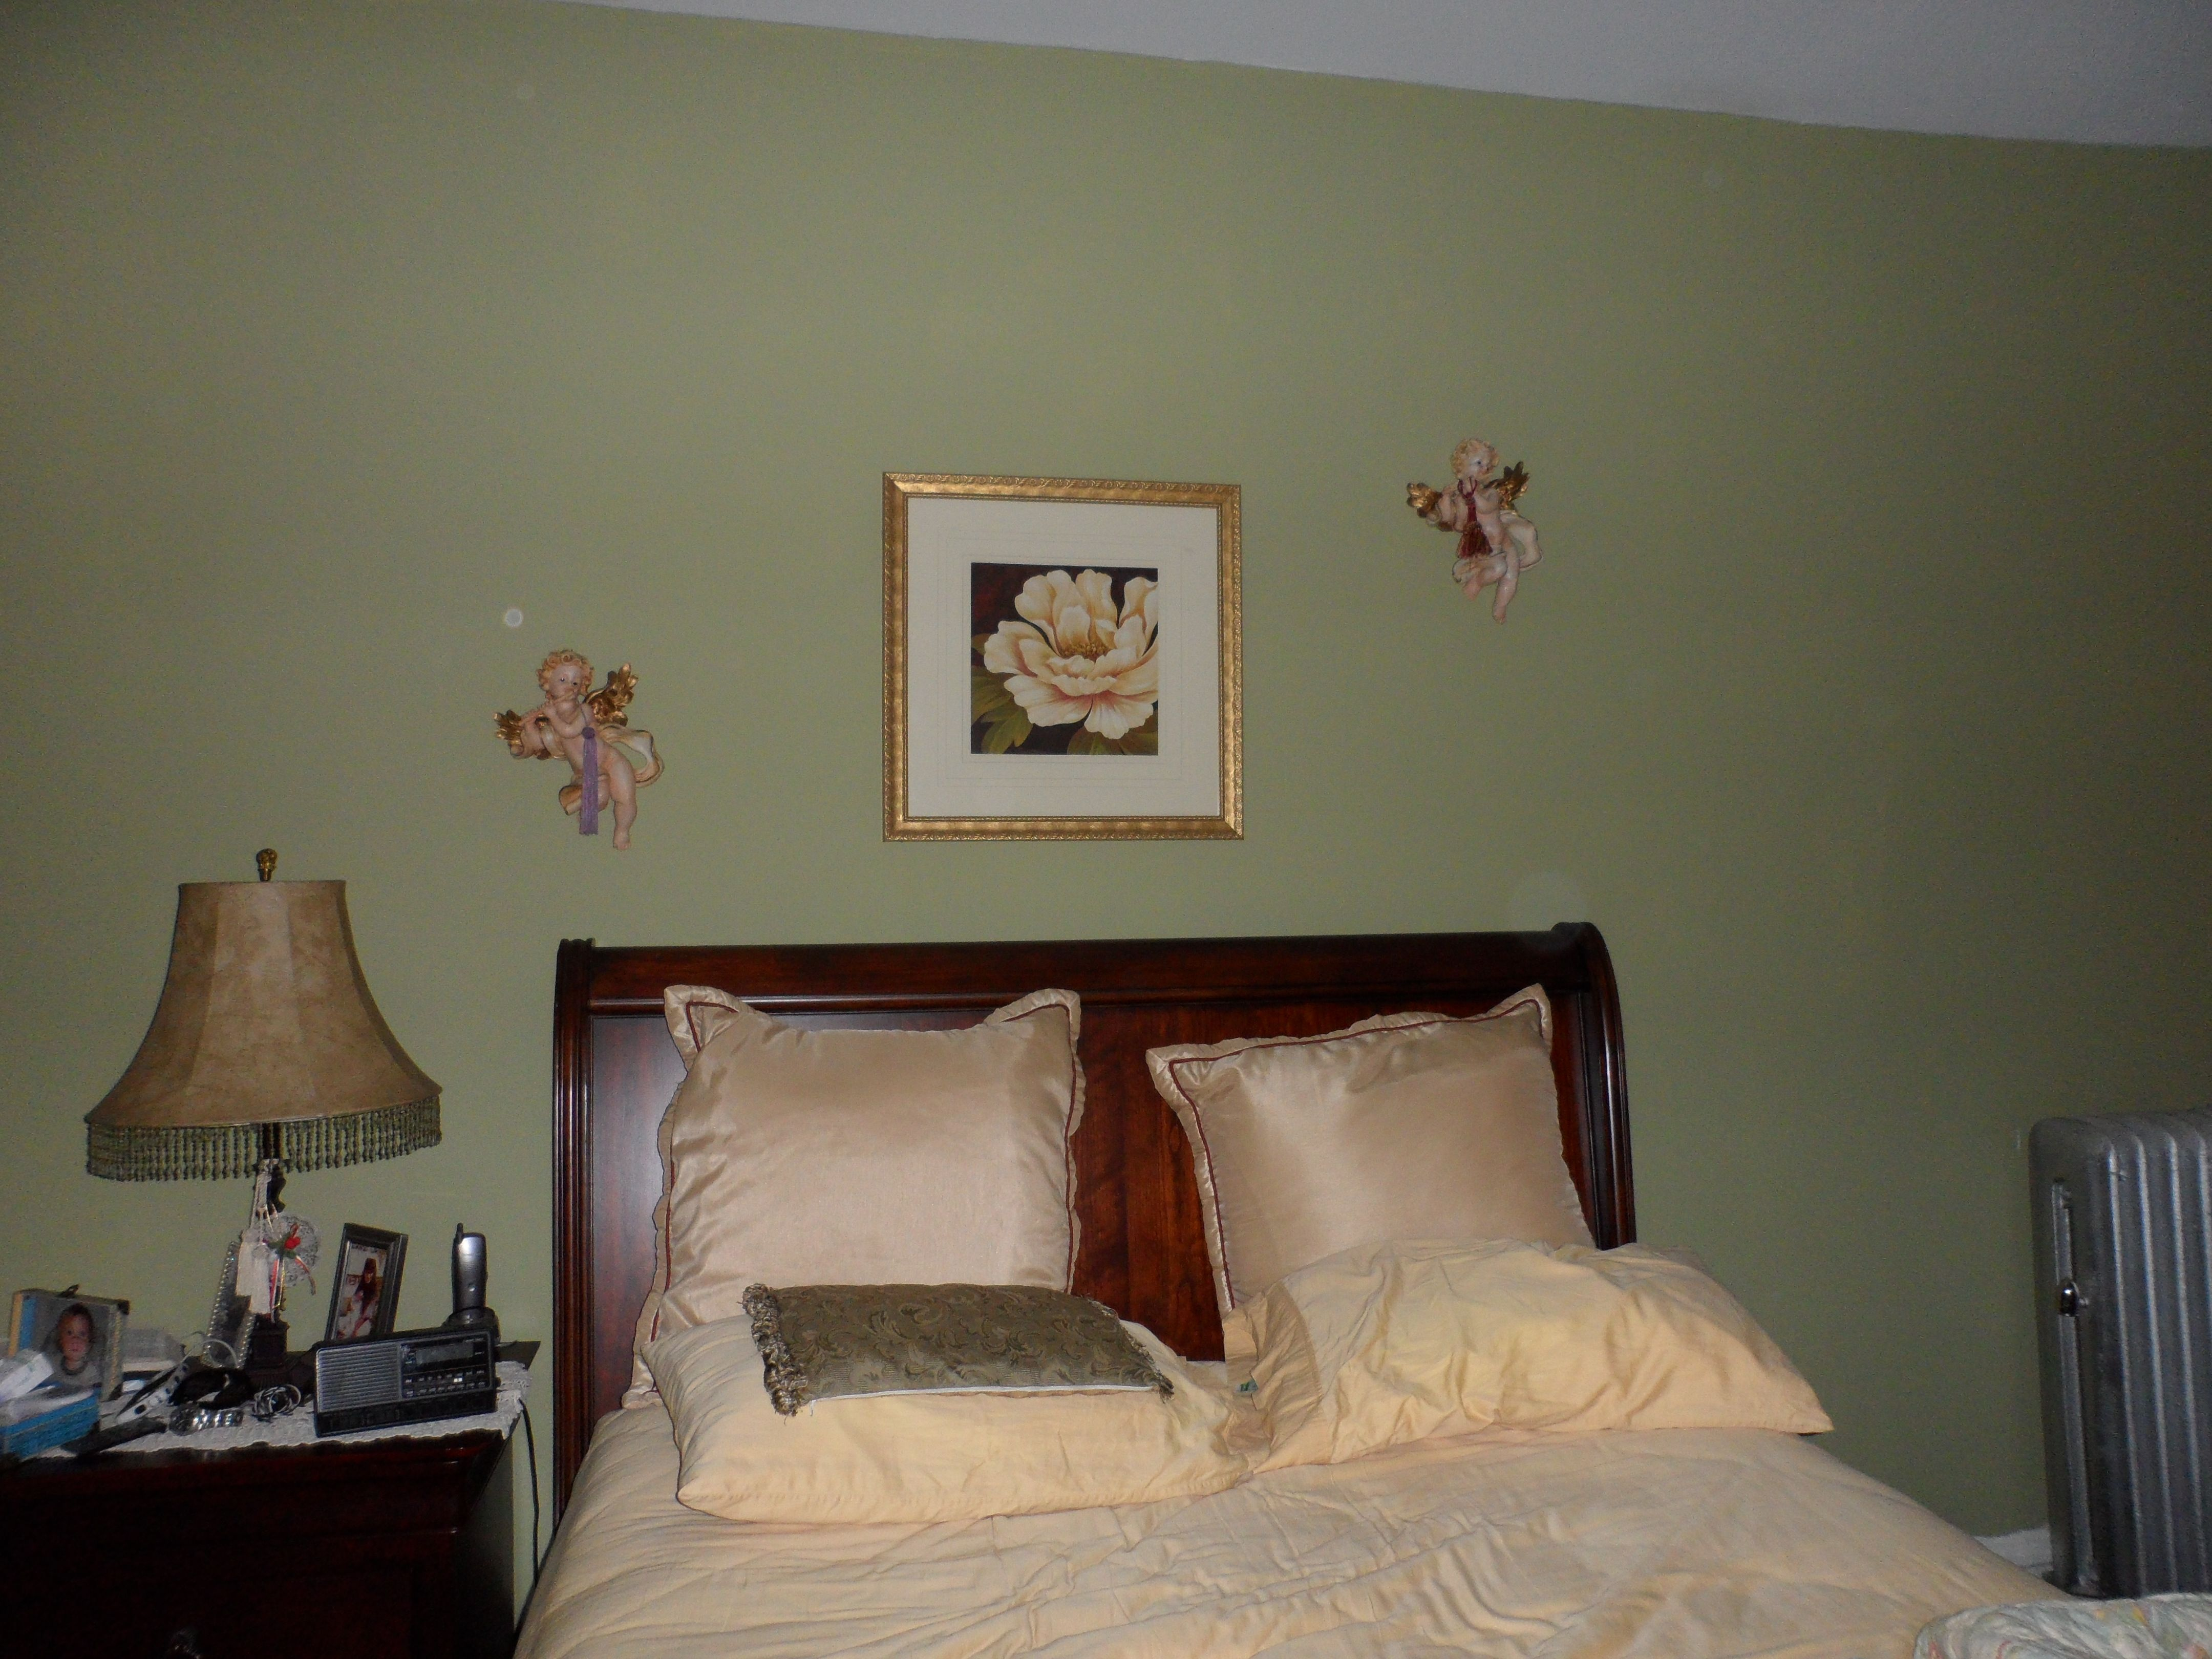 Using a Beautiful Green to decorate the